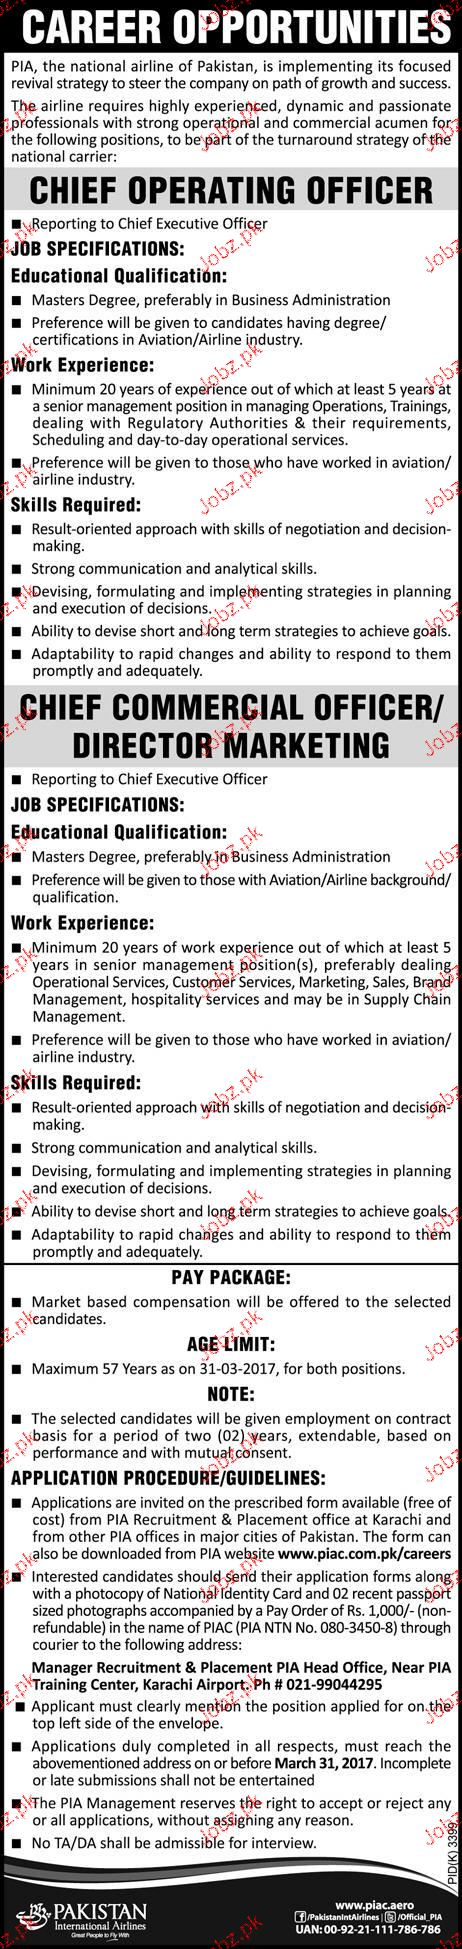 Chief Operating Officers Job in Pakistan International Air